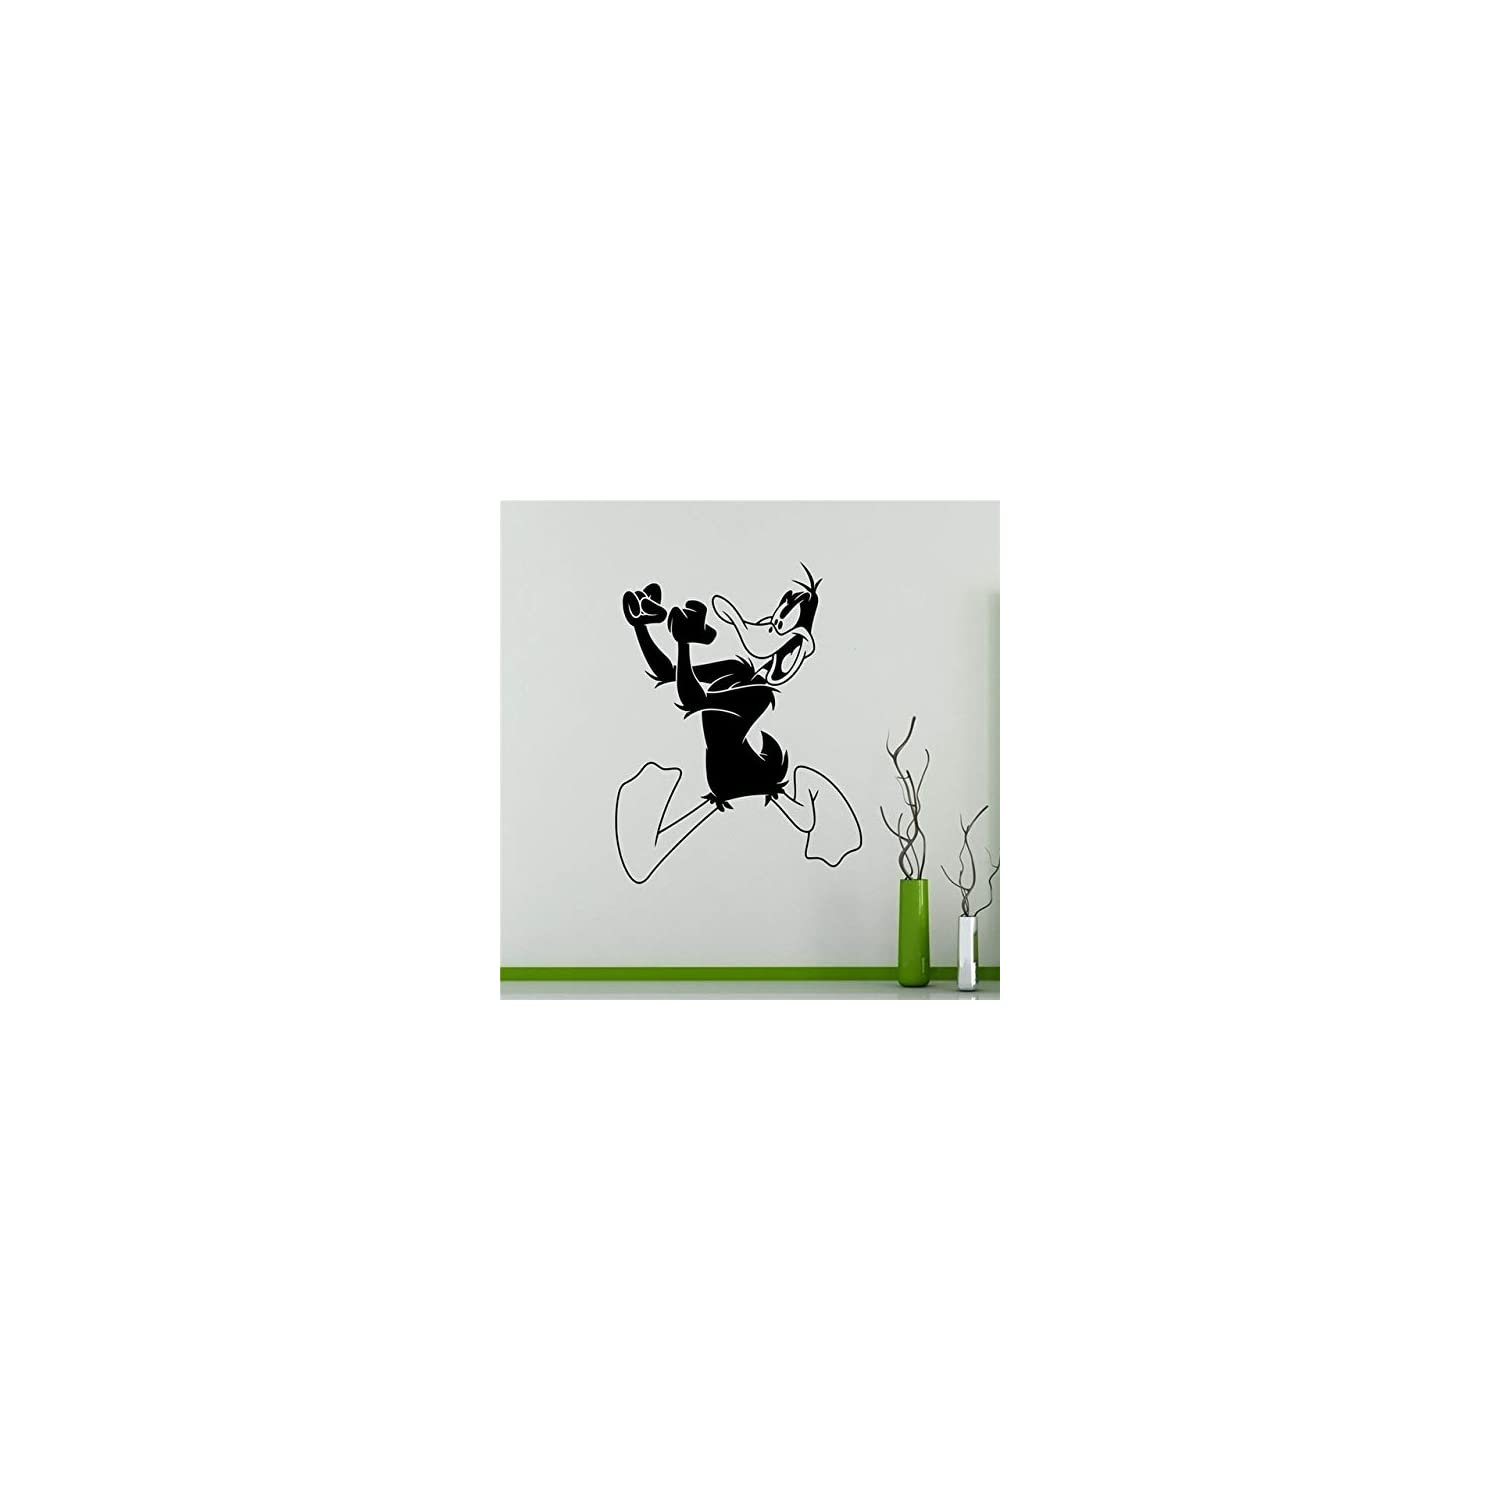 Wall Stickers for Kitchen, Comi Characters Interior Housewares Children's Hanging Wall Pictures Print Wallpaper Poster Sticker Abstract Removable Mural